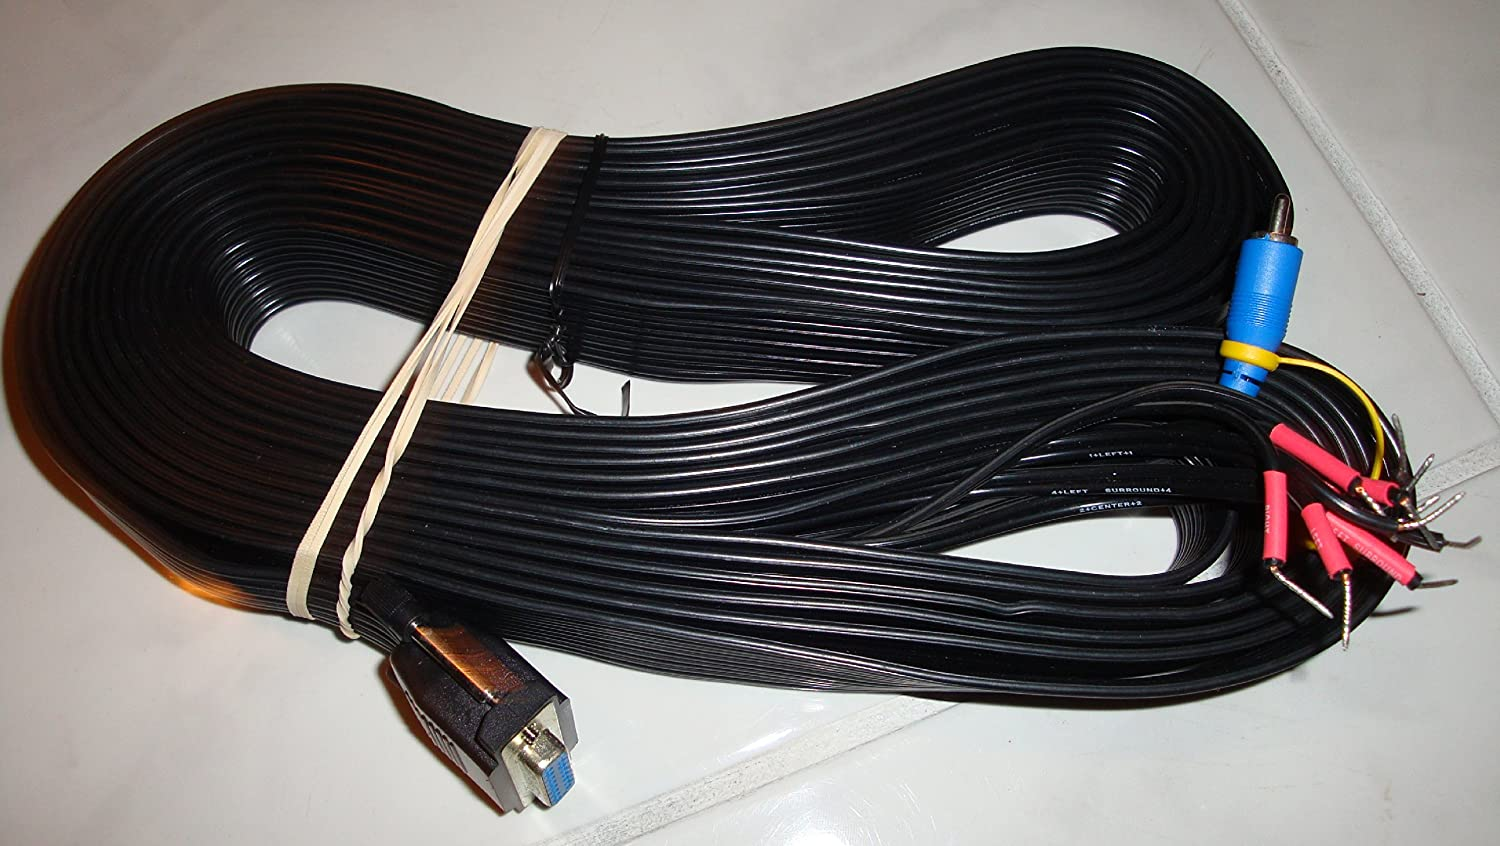 91VP4Uej%2BCL._SL1500_ amazon com bose audio cable 15 pin from subwoofer to receiver  at mifinder.co